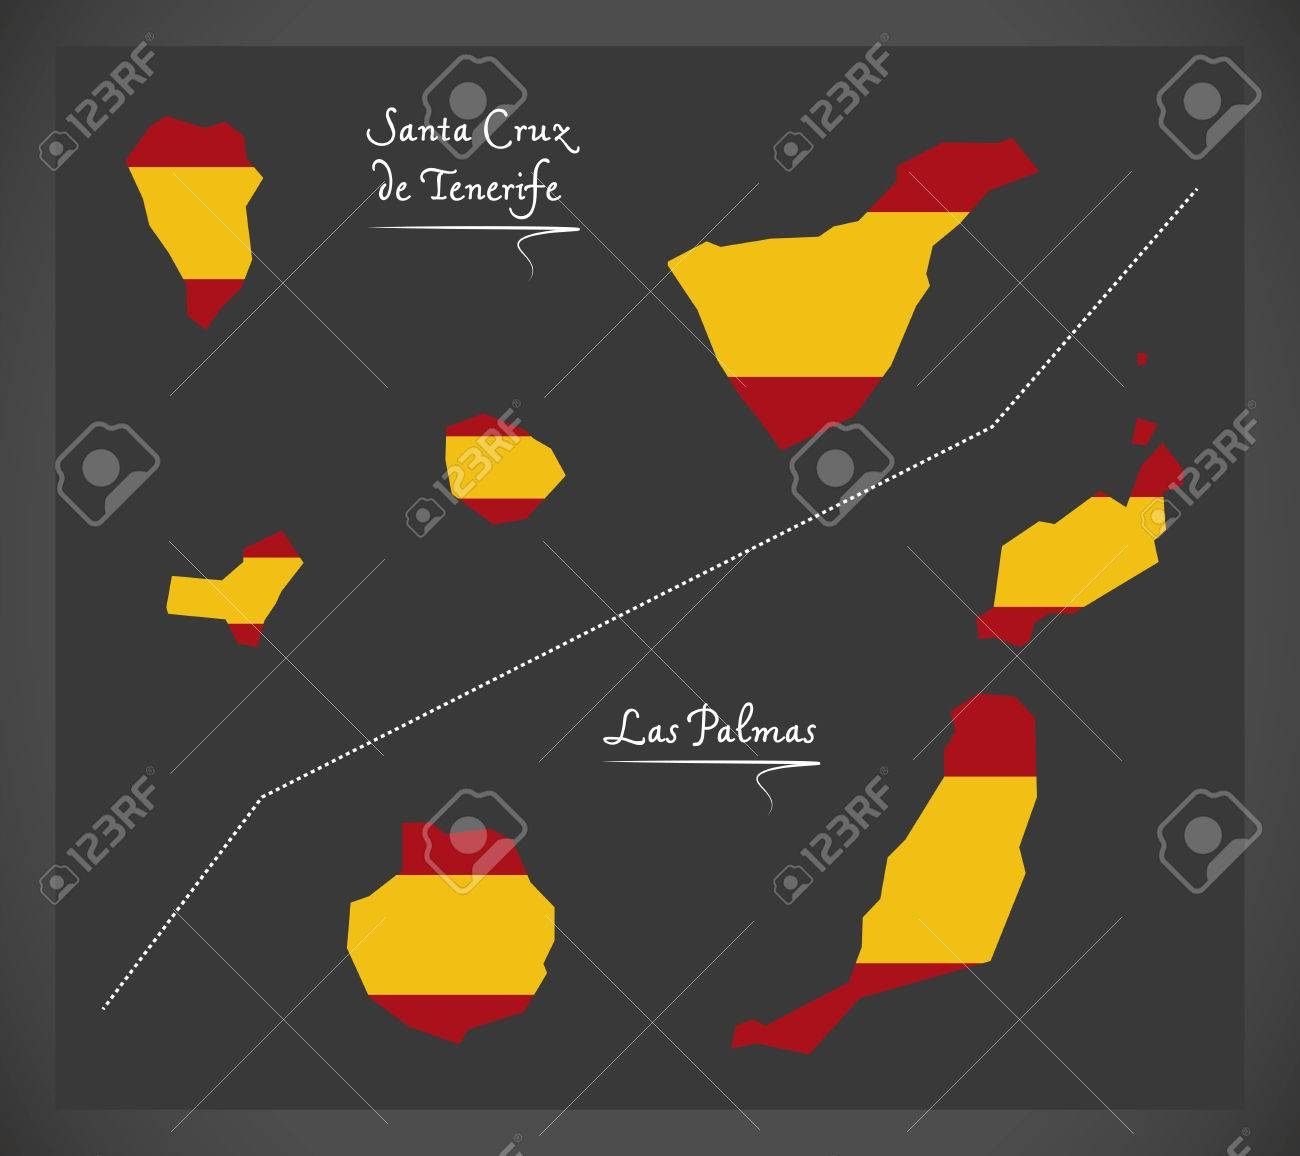 Map Of Spain Tenerife.Tenerife And Las Palmas Island Map With Spanish National Flag